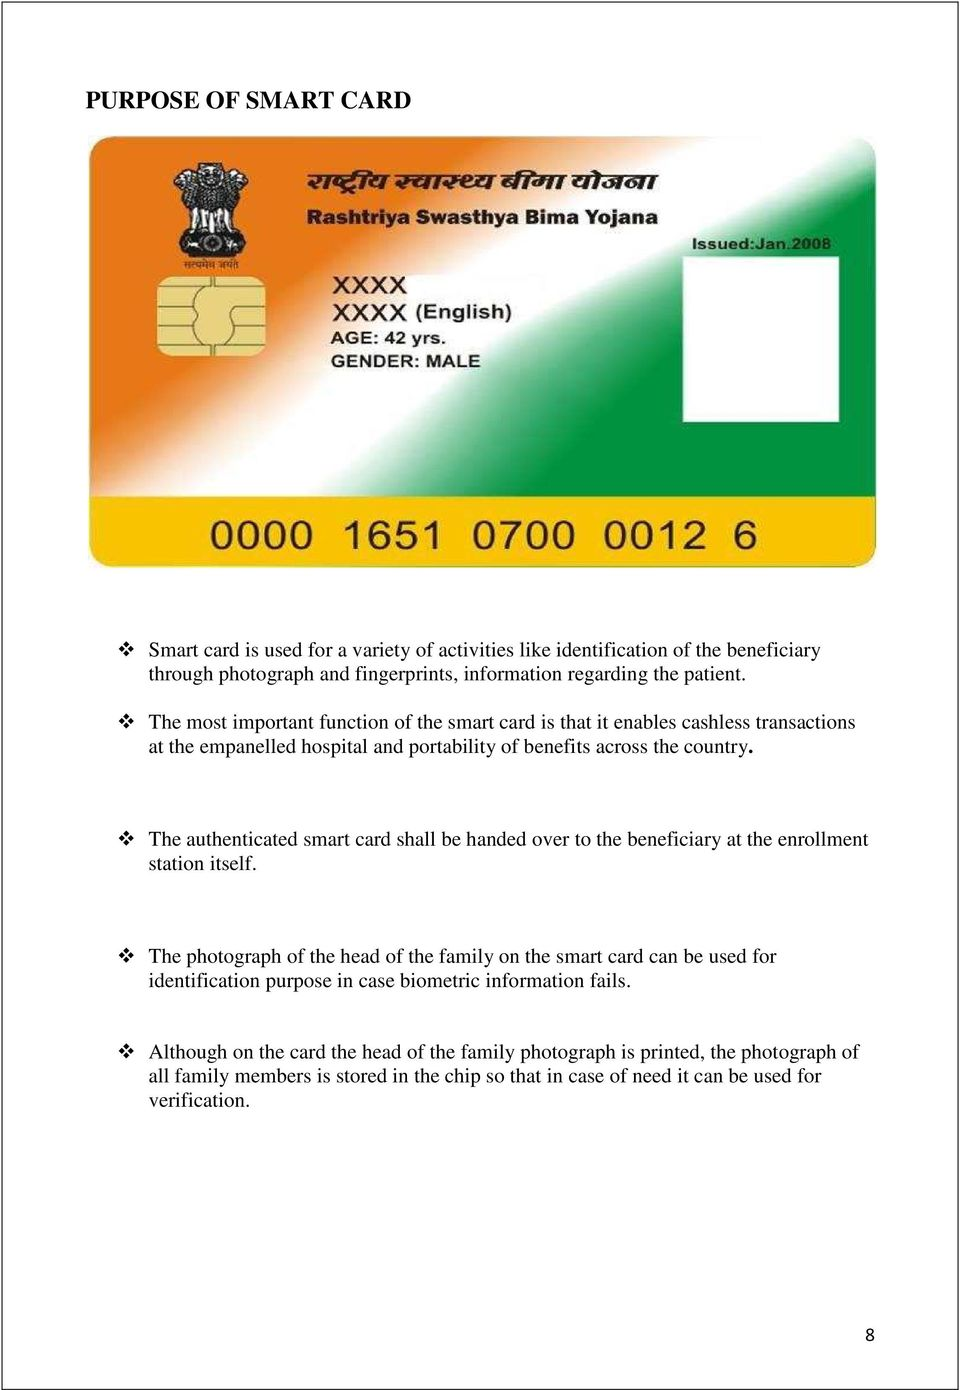 The authenticated smart card shall be handed over to the beneficiary at the enrollment station itself.